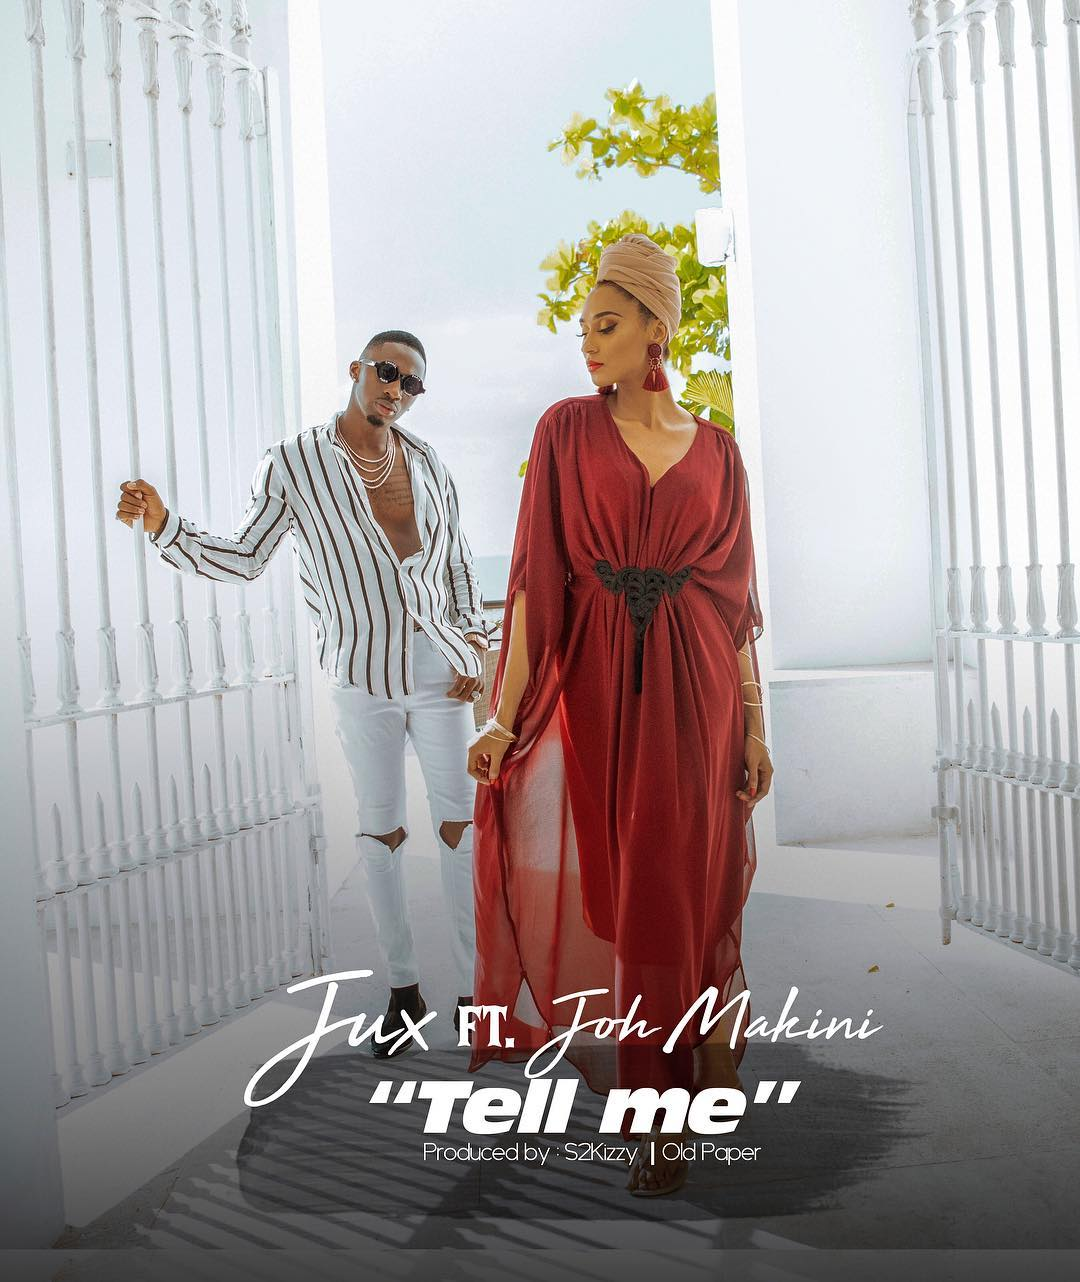 Jux Ft. Joh Makini – Tell Me